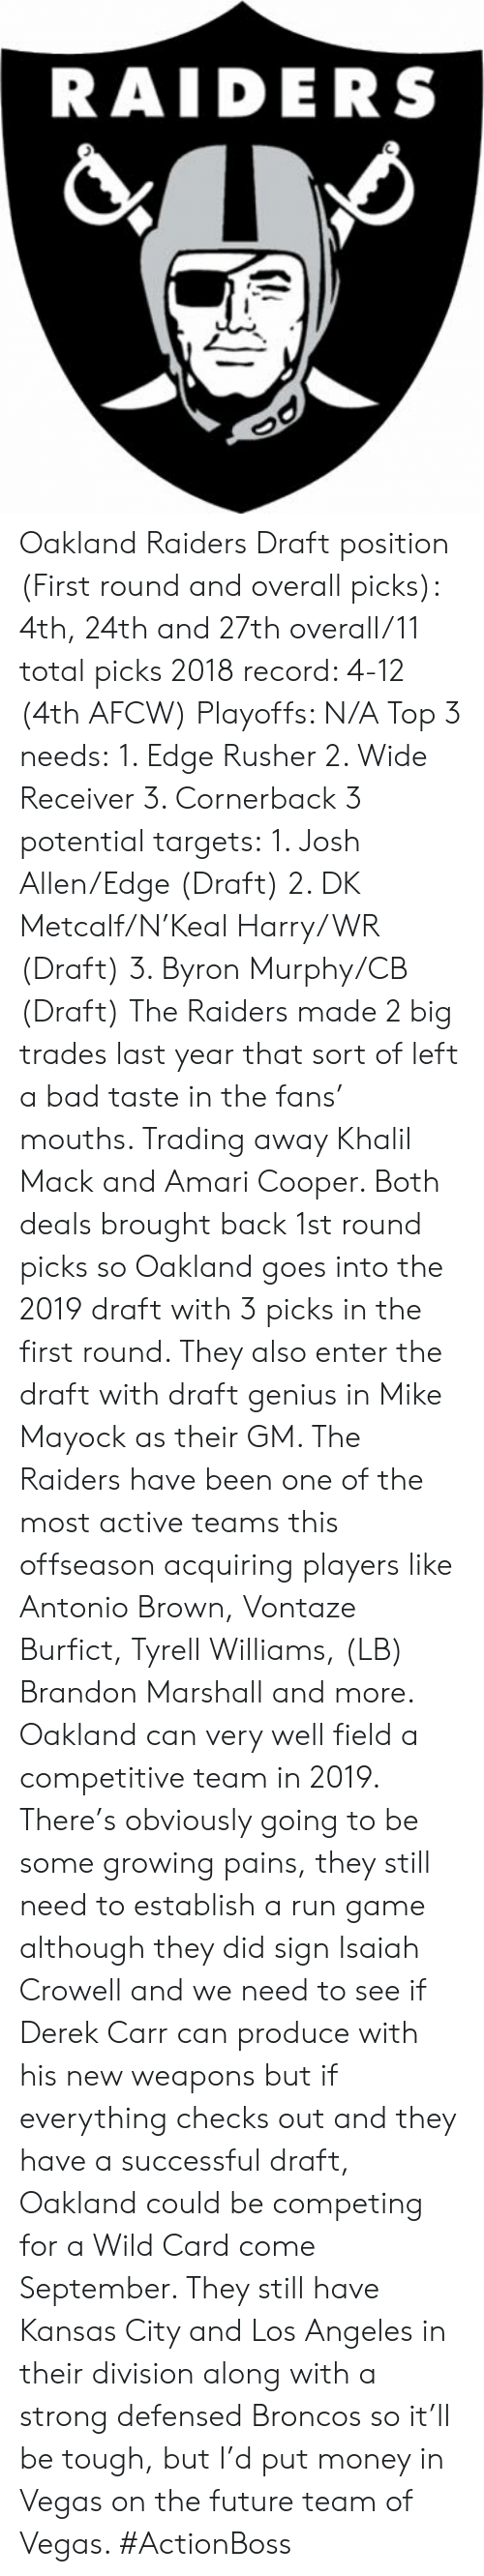 derek carr: RAIDERS Oakland Raiders  Draft position (First round and overall picks): 4th, 24th and 27th overall/11 total picks  2018 record: 4-12 (4th AFCW) Playoffs: N/A  Top 3 needs: 1. Edge Rusher 2. Wide Receiver  3. Cornerback  3 potential targets: 1. Josh Allen/Edge (Draft) 2. DK Metcalf/N'Keal Harry/WR (Draft) 3. Byron Murphy/CB (Draft)  The Raiders made 2 big trades last year that sort of left a bad taste in the fans' mouths. Trading away Khalil Mack and Amari Cooper. Both deals brought back 1st round picks so Oakland goes into the 2019 draft with 3 picks in the first round. They also enter the draft with draft genius in Mike Mayock as their GM. The Raiders have been one of the most active teams this offseason acquiring players like Antonio Brown, Vontaze Burfict, Tyrell Williams, (LB) Brandon Marshall and more. Oakland can very well field a competitive team in 2019. There's obviously going to be some growing pains, they still need to establish a run game although they did sign Isaiah Crowell and we need to see if Derek Carr can produce with his new weapons but if everything checks out and they have a successful draft, Oakland could be competing for a Wild Card come September. They still have Kansas City and Los Angeles in their division along with a strong defensed Broncos so it'll be tough, but I'd put money in Vegas on the future team of Vegas.  #ActionBoss